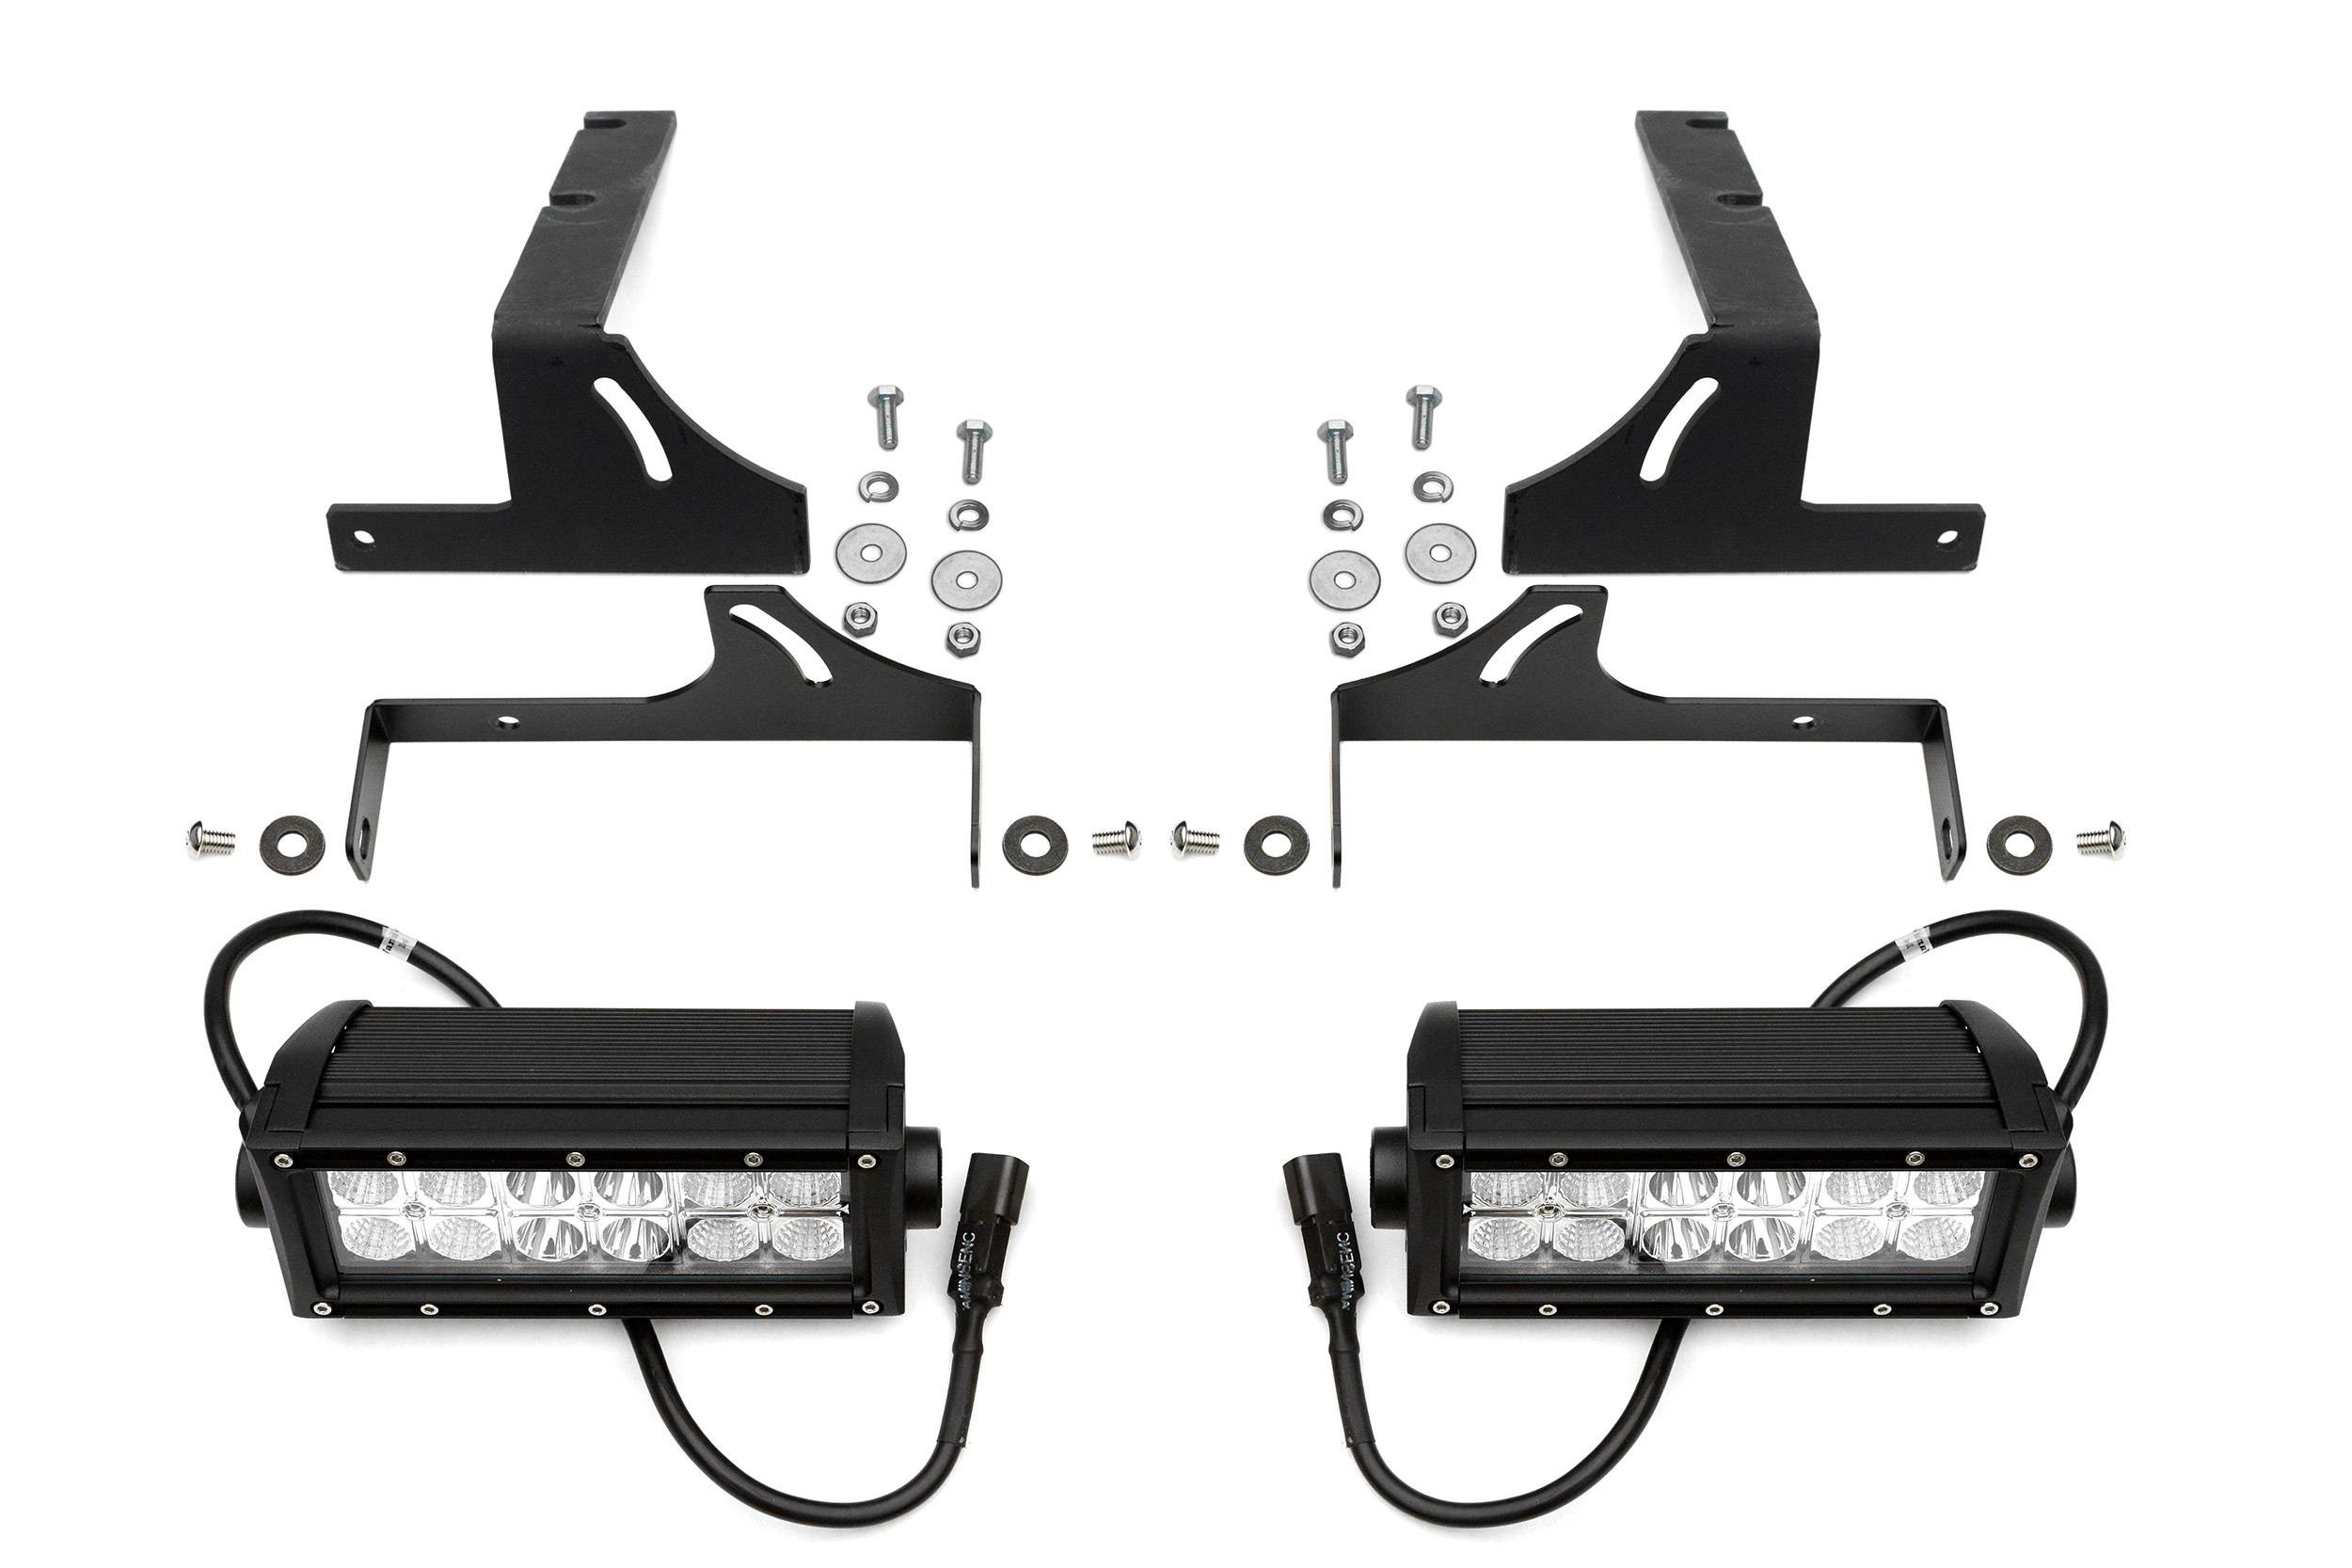 ZROADZ                                             - 2015-2019 Silverado, Sierra HD Non-Diesel Models - Rear Bumper LED Kit with (2) 6 Inch LED Straight Double Row Light Bars - PN #Z381221-KIT